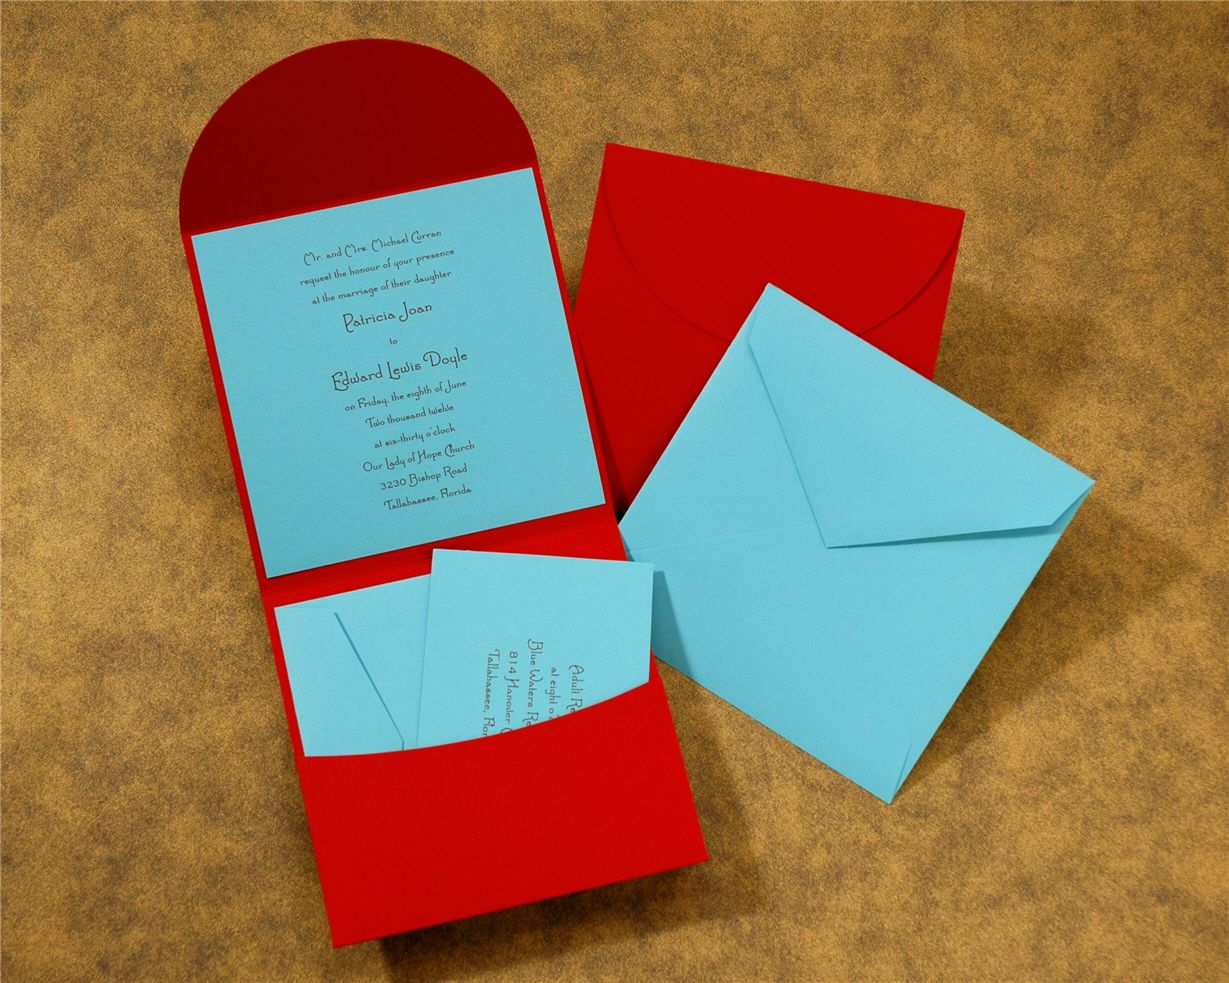 Ice blue + cherry red invitations | Wedding | Pinterest | Weddings ...